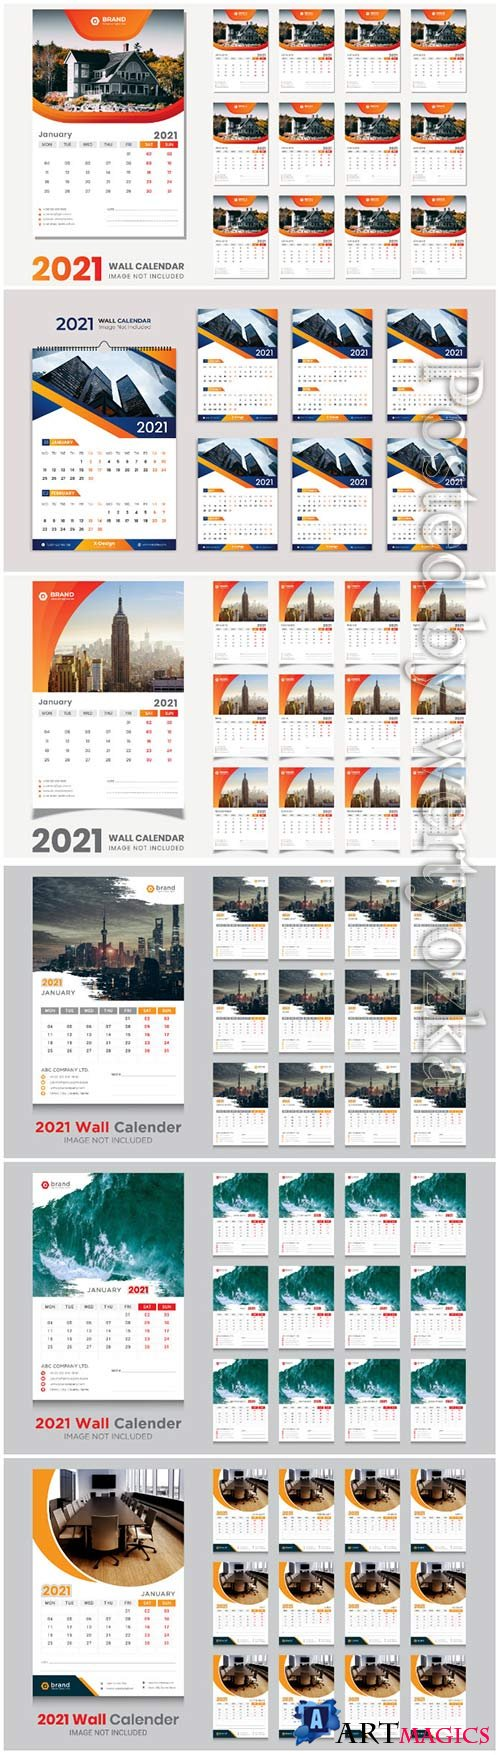 Desk calendar 2021 template design for new year vol 4